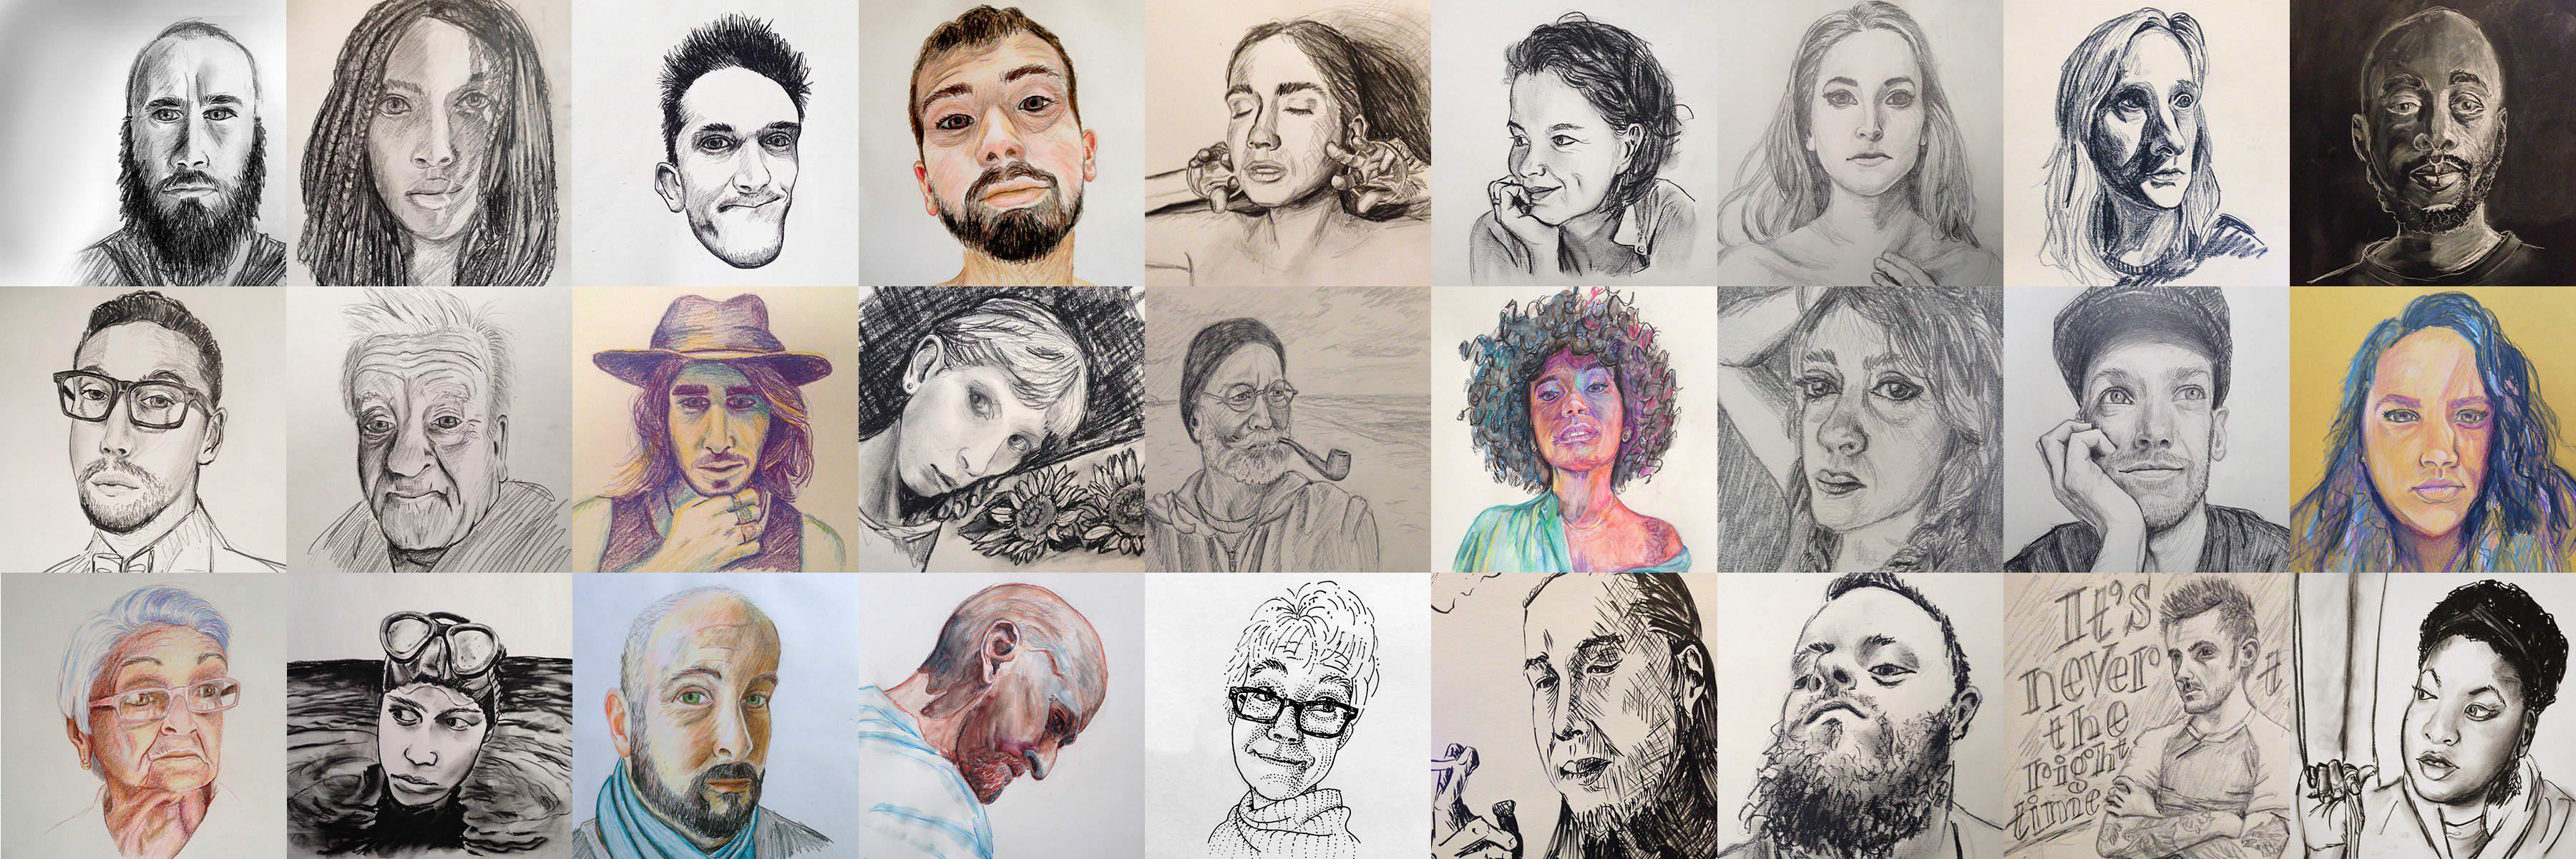 Selection of sketches of faces